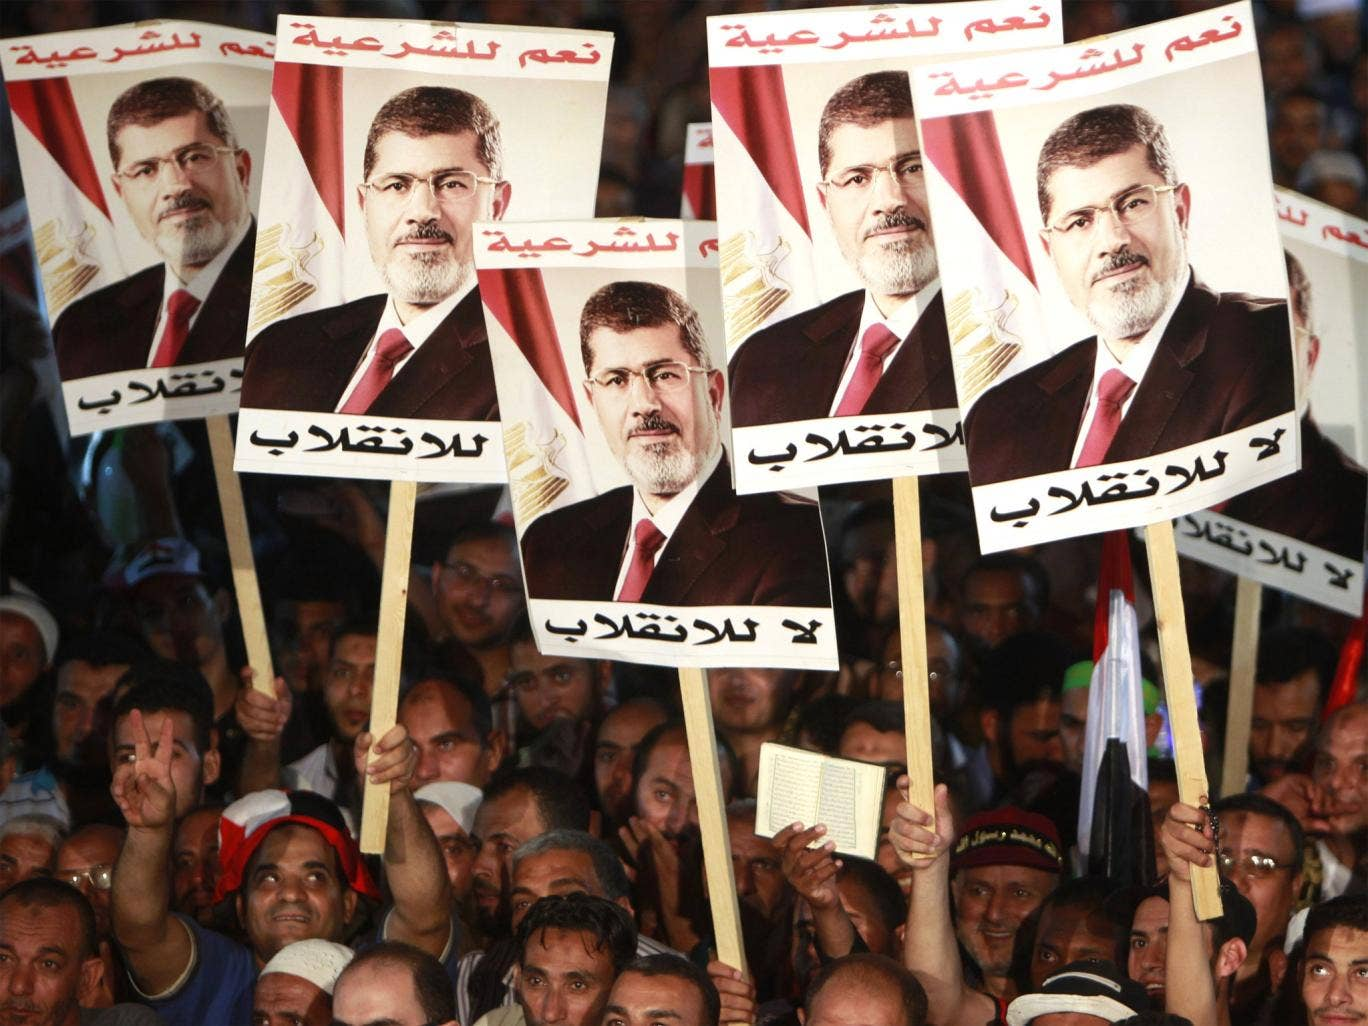 Supporters of deposed President Mohamed Morsi protest at Rabaa al-Adawiya square in Cairo